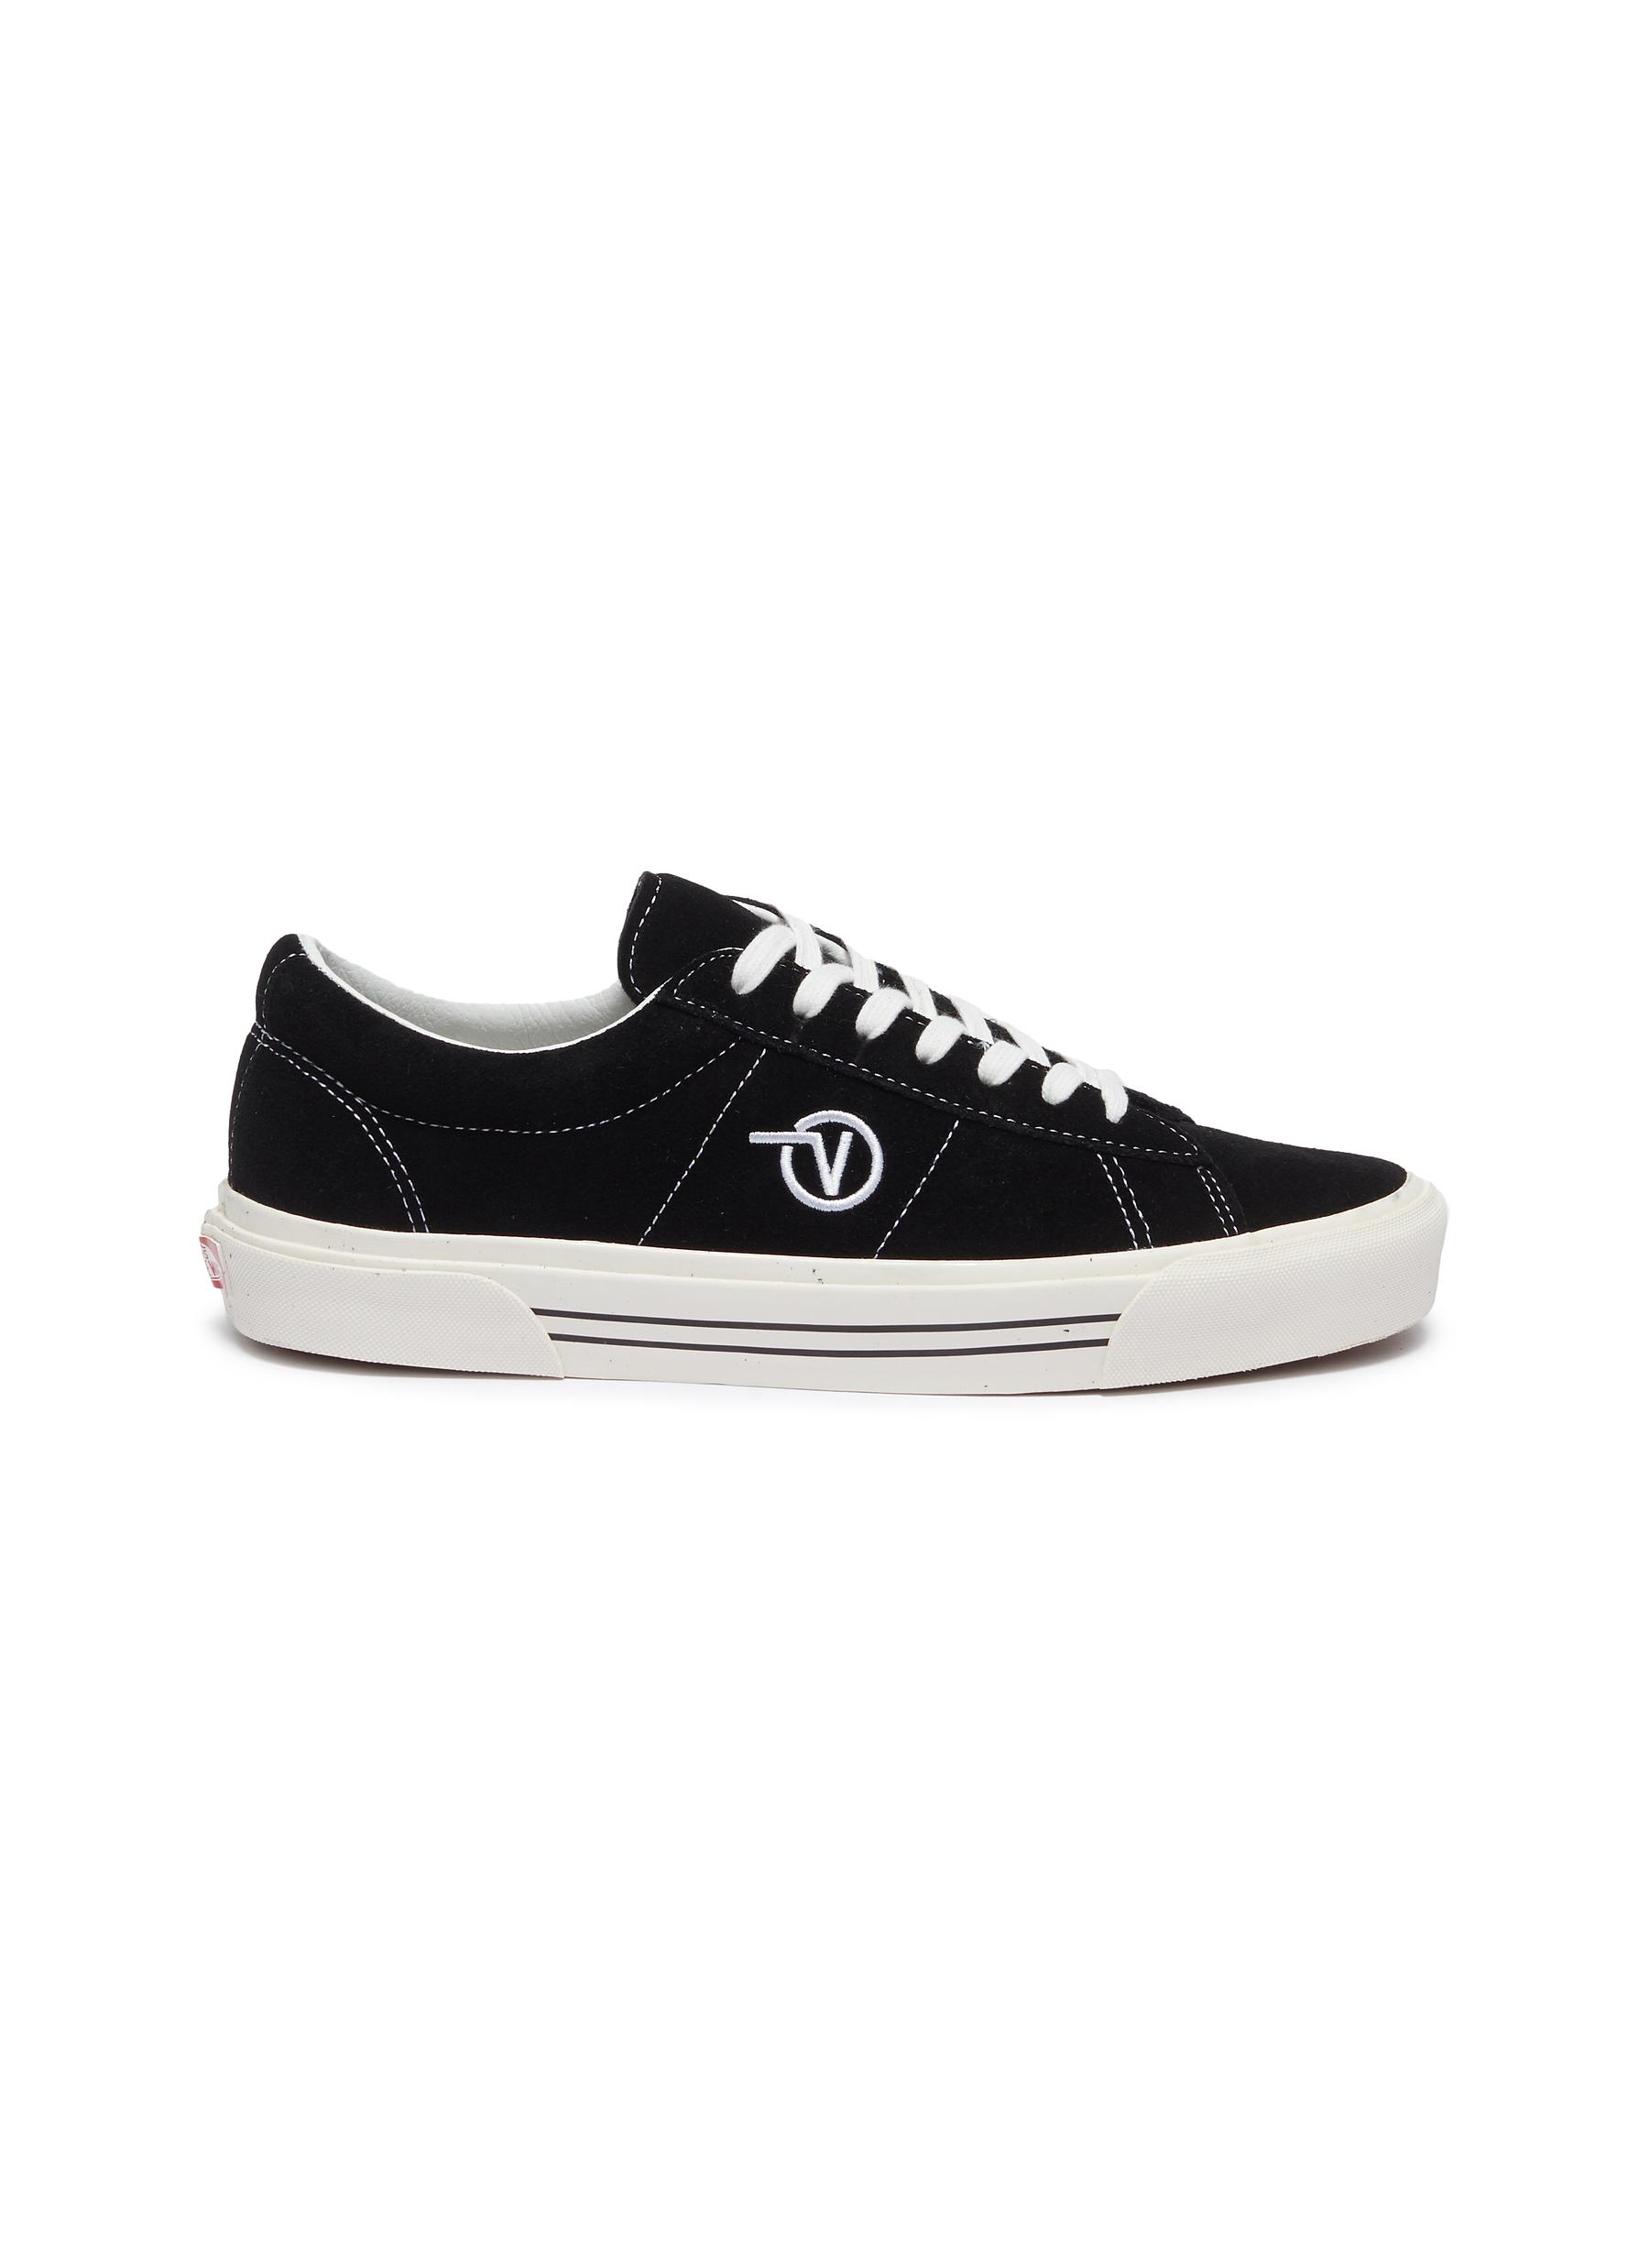 Vans Sneakers ''Anaheim Factory Sid DX' contrast stitch sneakers